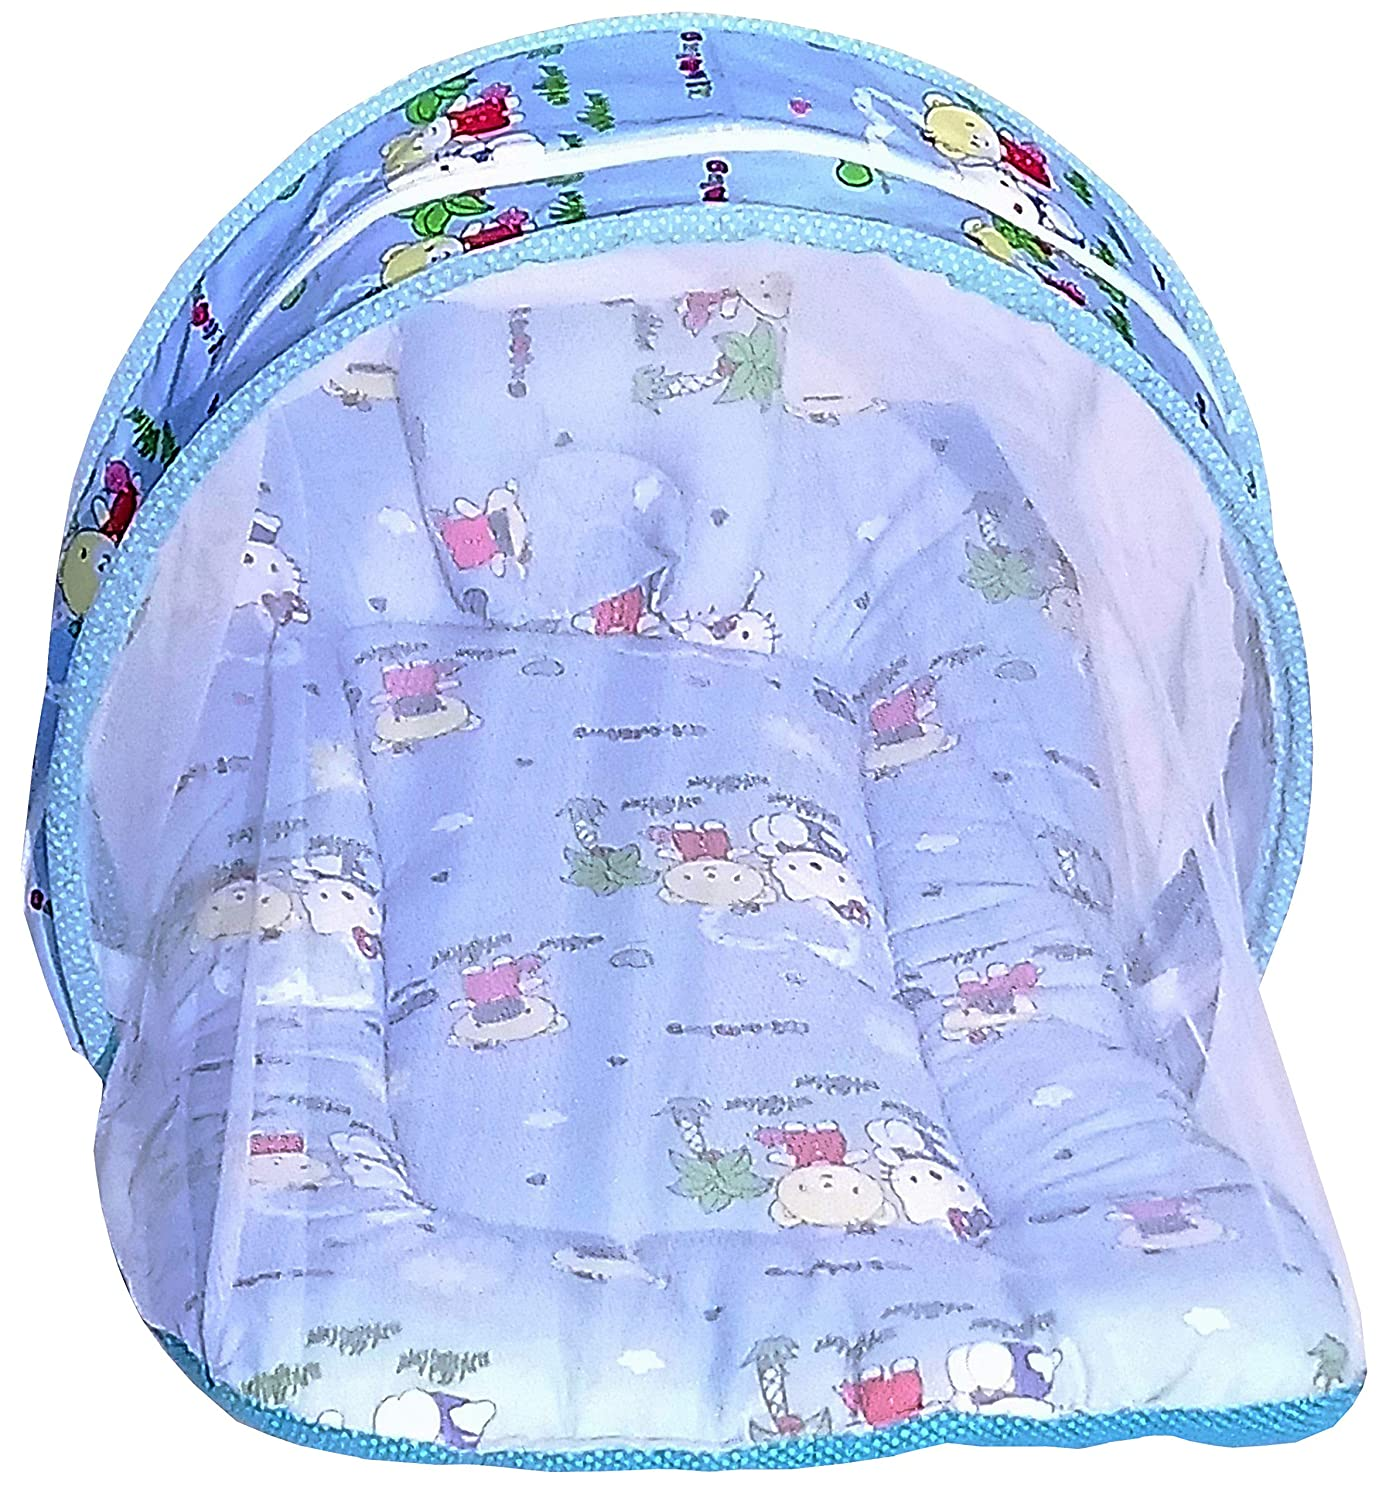 Baby Cot Bedding Set with Mosquito Net